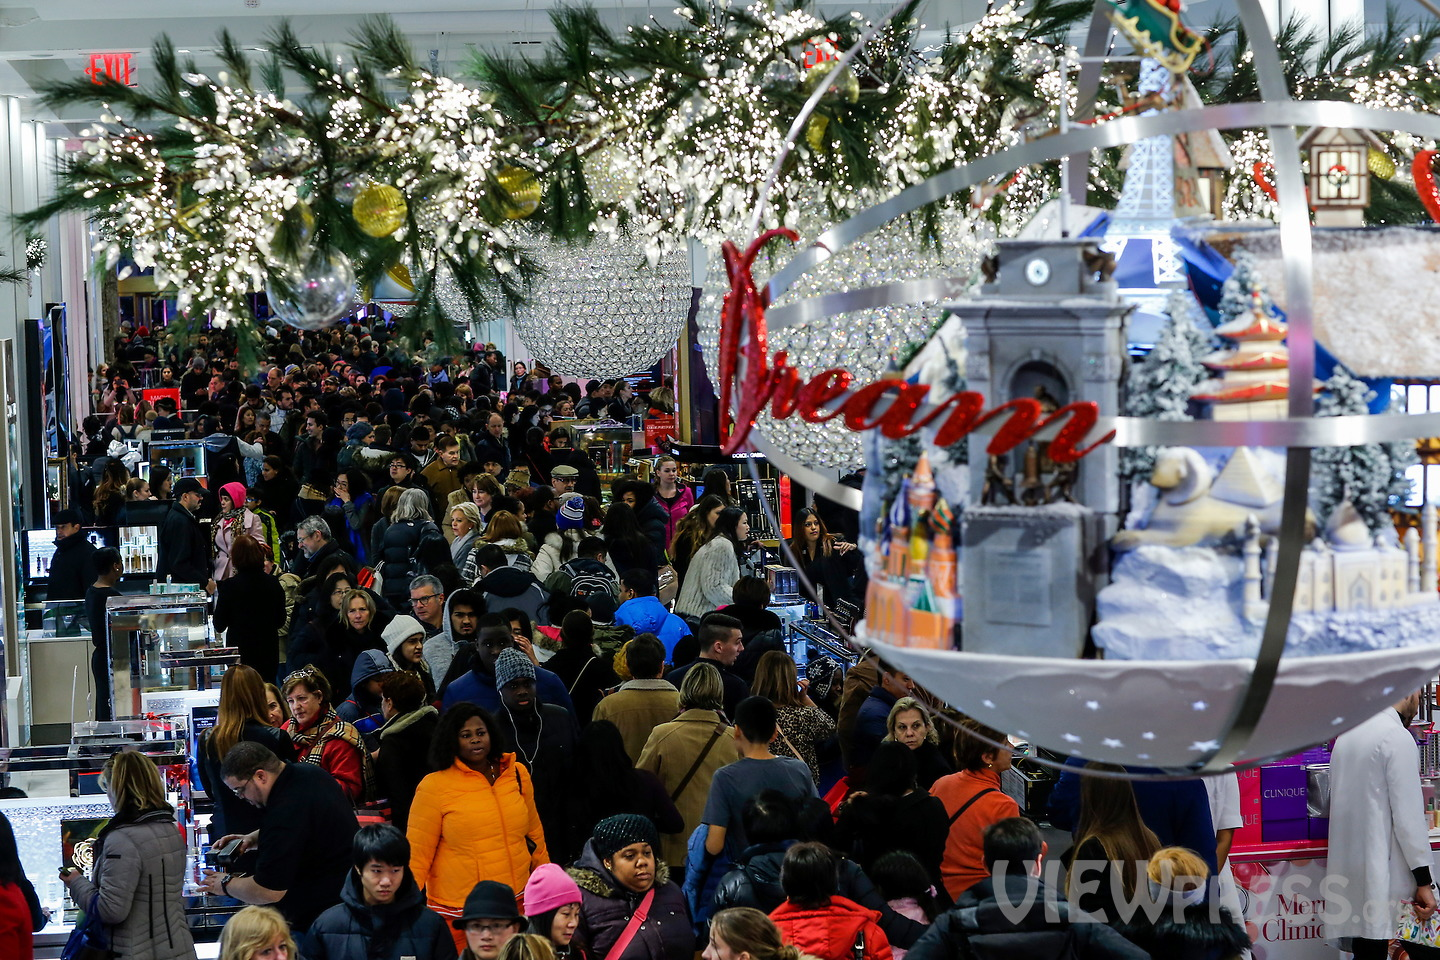 Shoppers crowded stores during black friday in New York